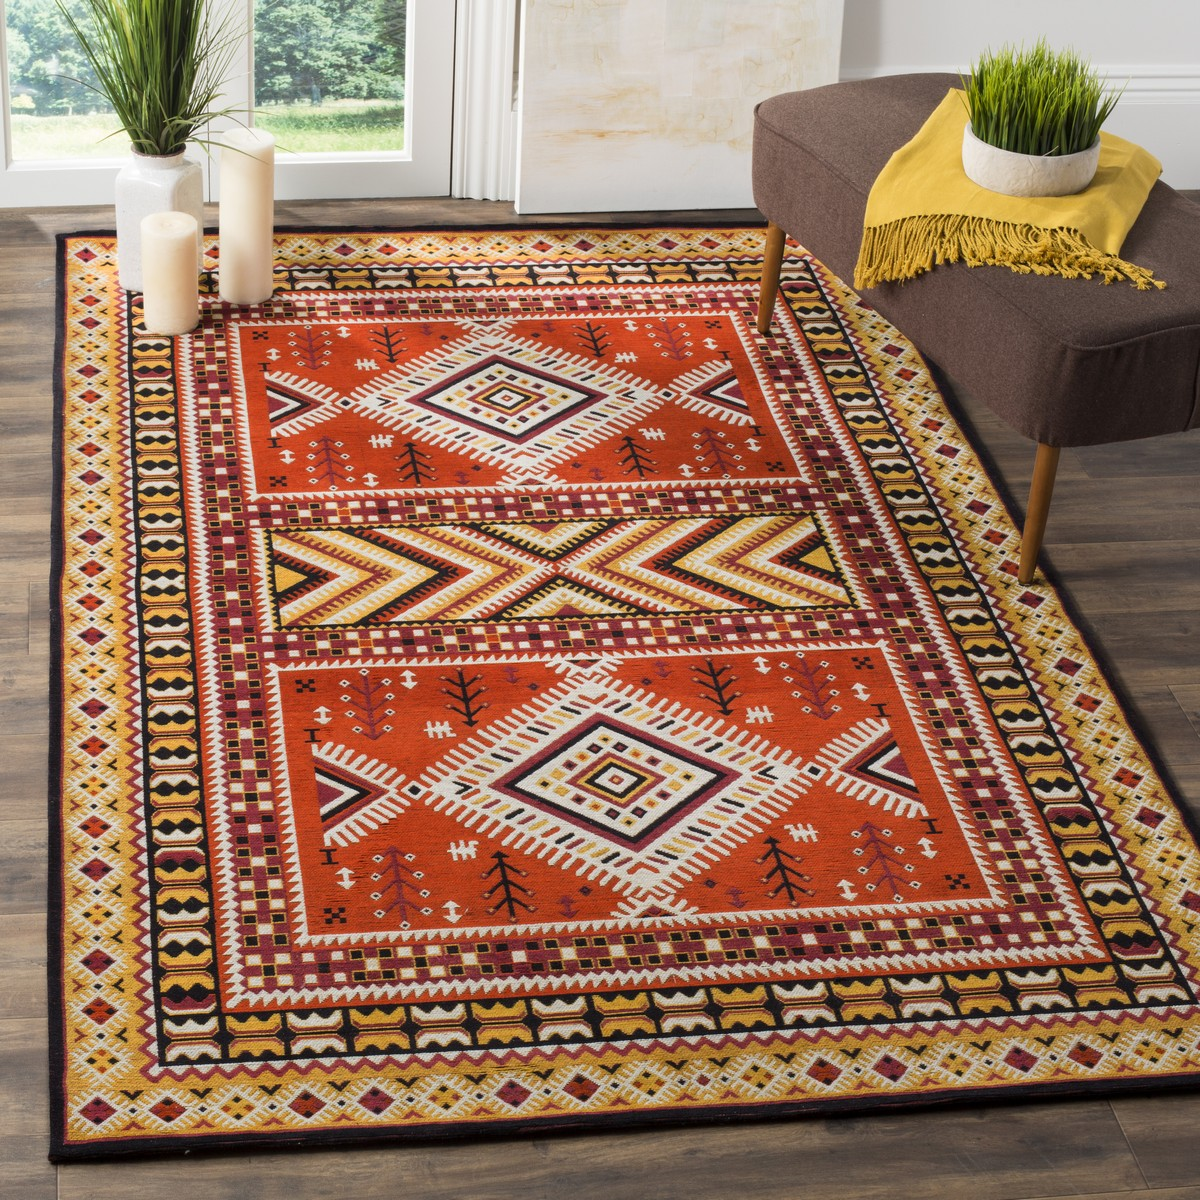 Rug Clv511d Classic Vintage Area Rugs By Safavieh